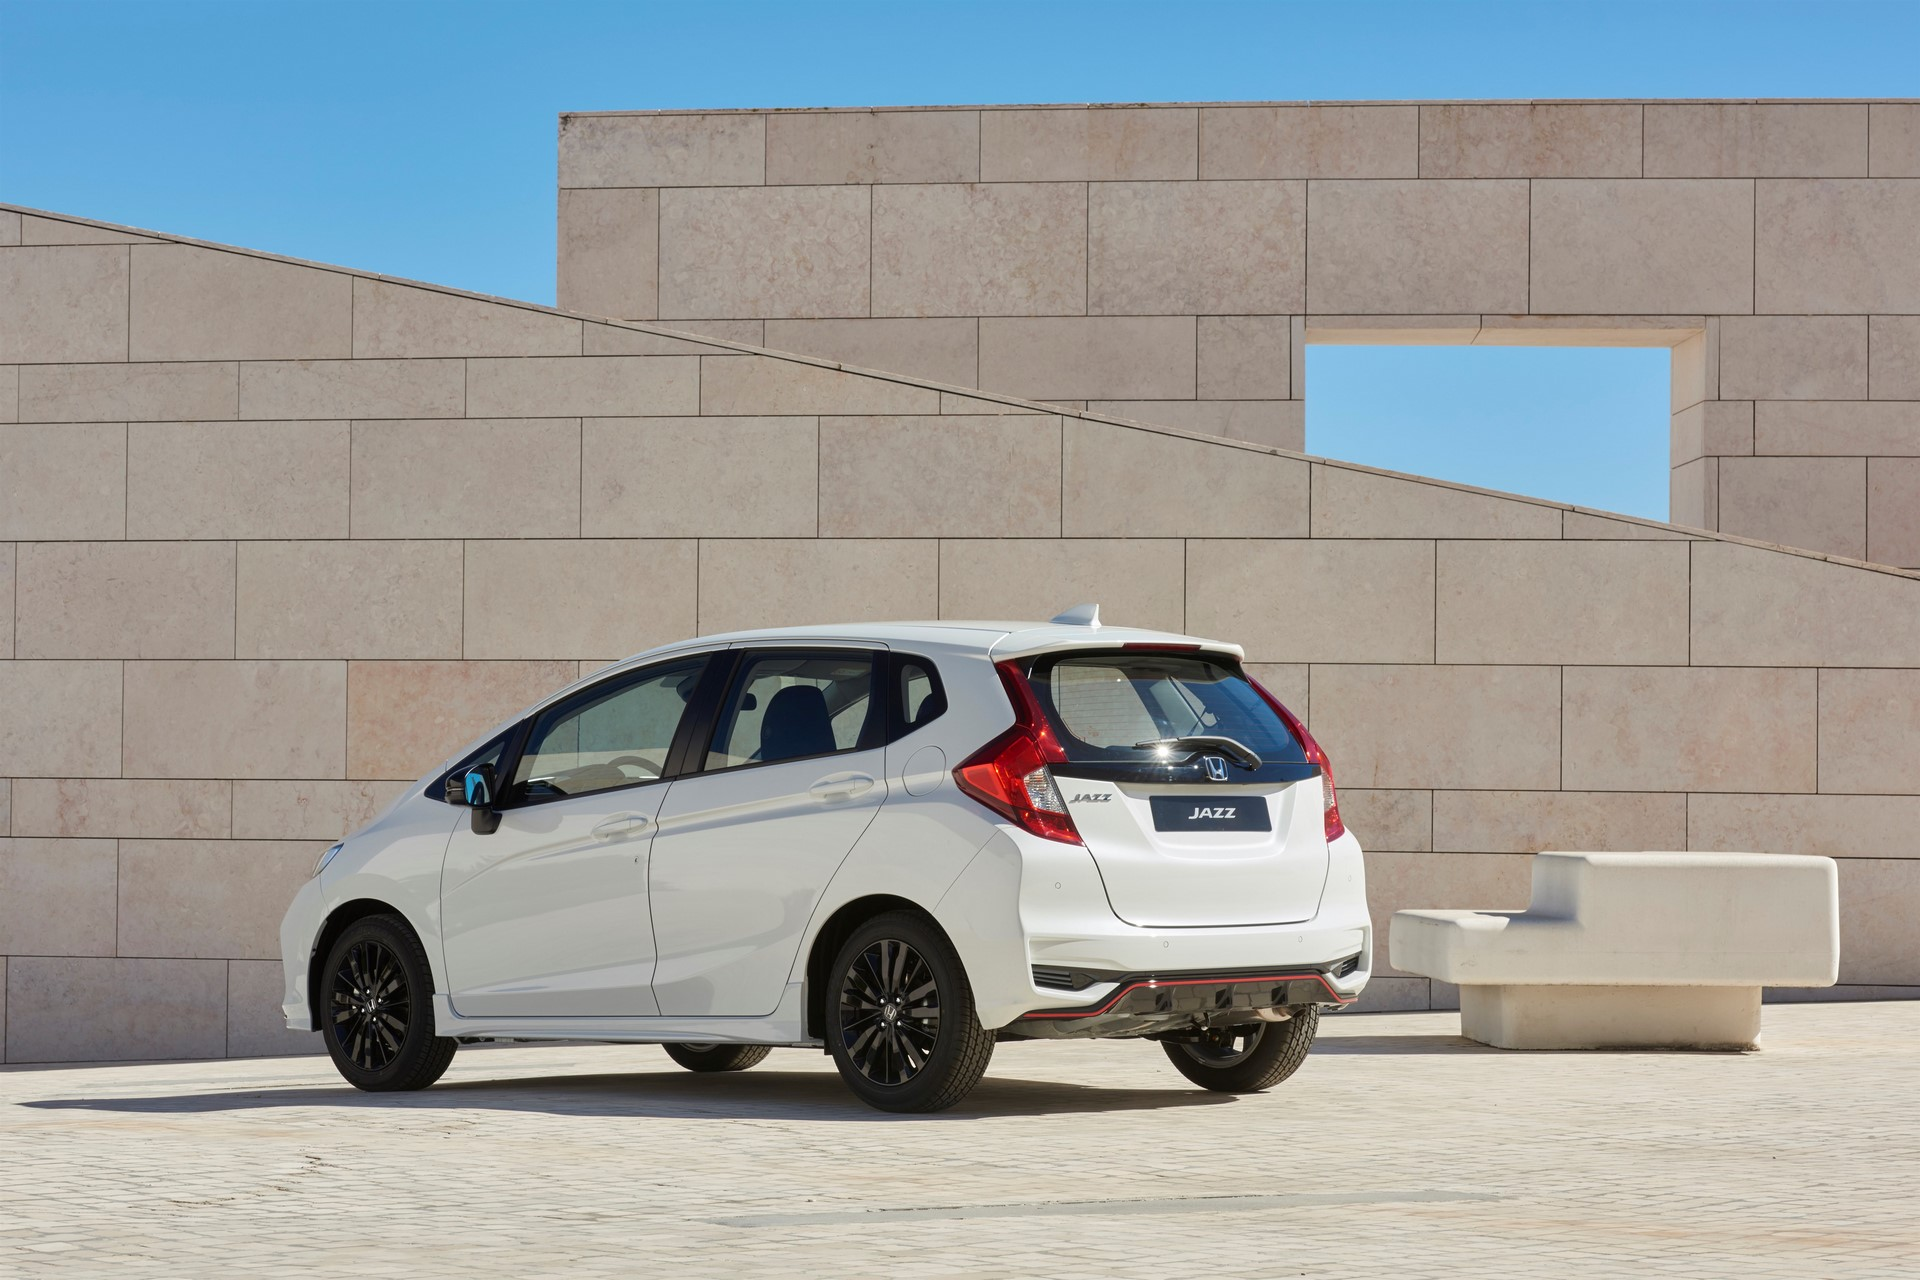 HONDA REVEALS FRESH LOOK AND NEW ENGINE OPTION FOR JAZZ SUPERMINI